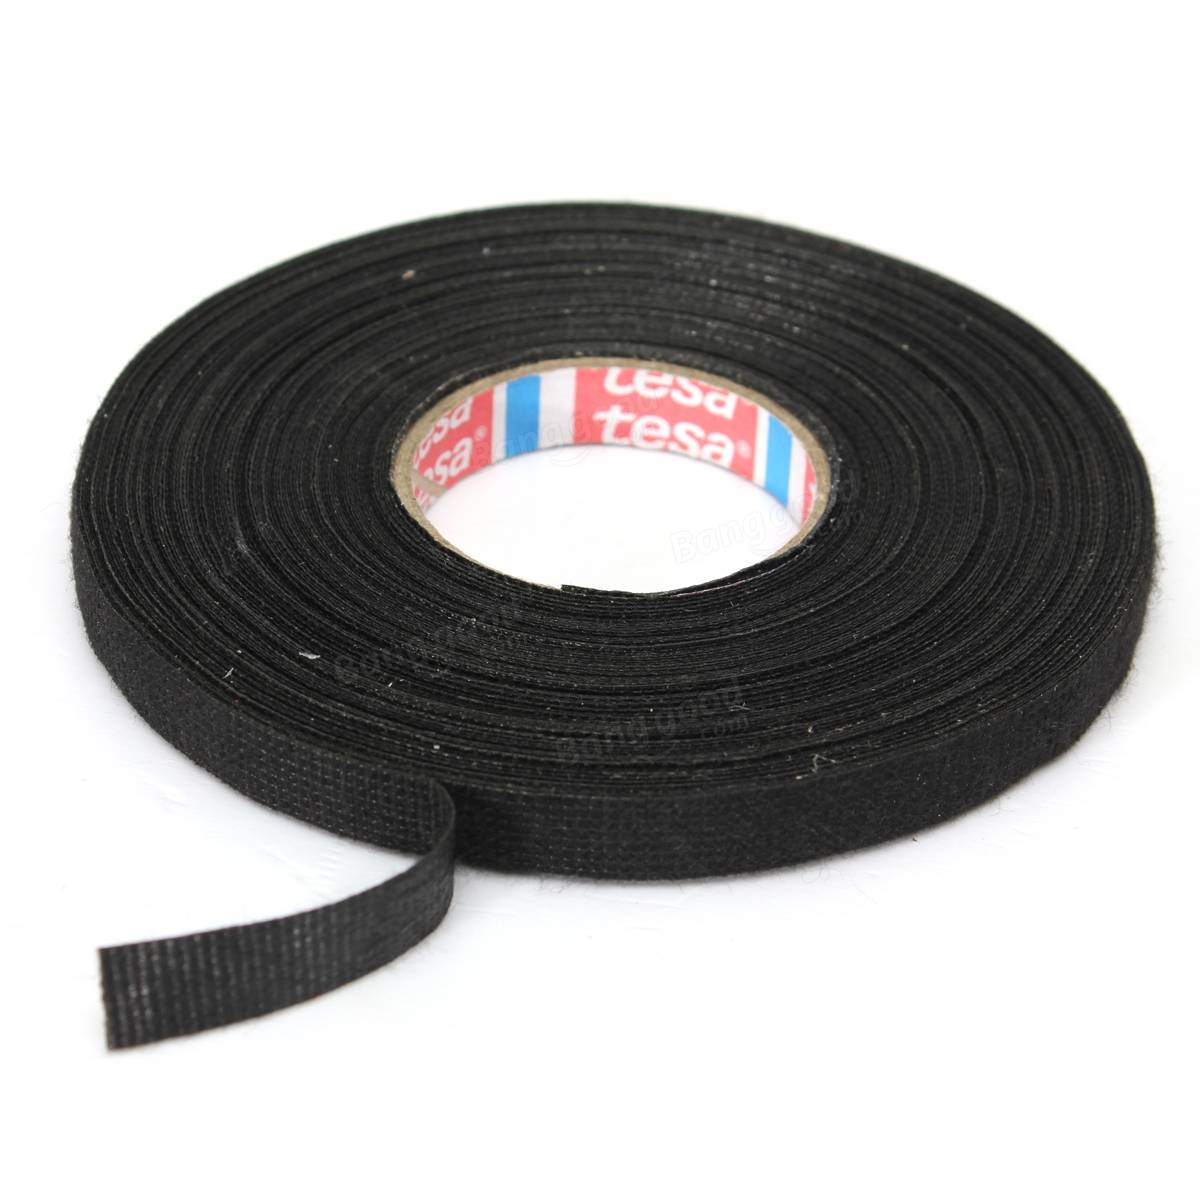 Superb Car Wiring Loom Harness Adhesive Cloth Fabric Tape Cable Loom 9Mm X Wiring Cloud Timewinrebemohammedshrineorg